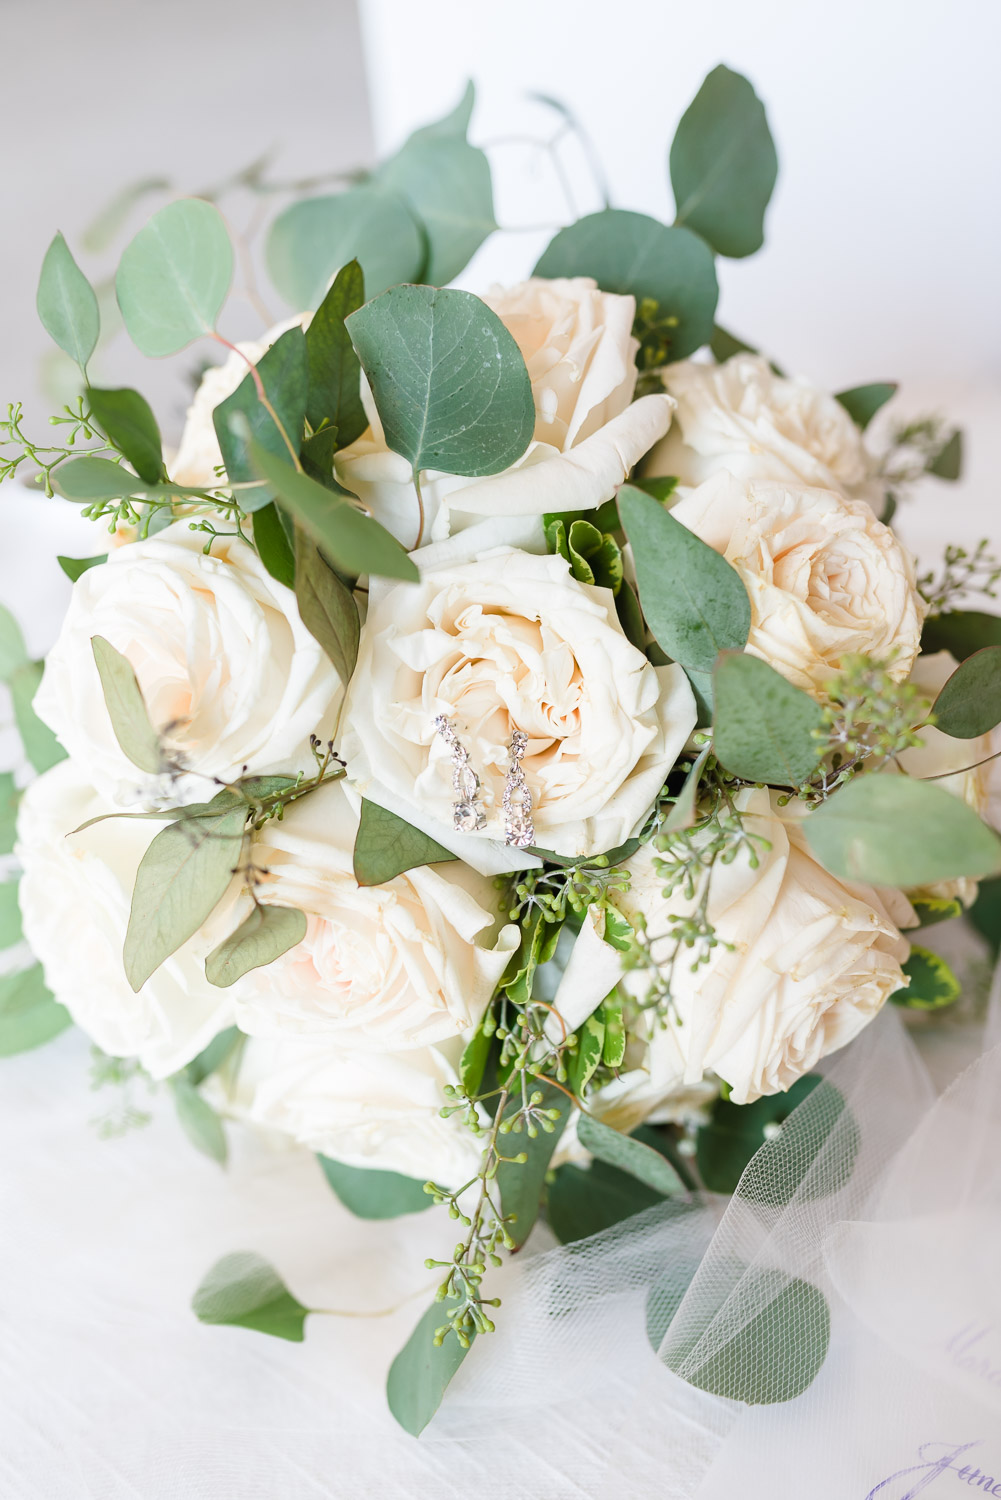 white rose and eucaliptus wedding bouquet made by staff at The Barn at Drewia Hill in Sale creek TN